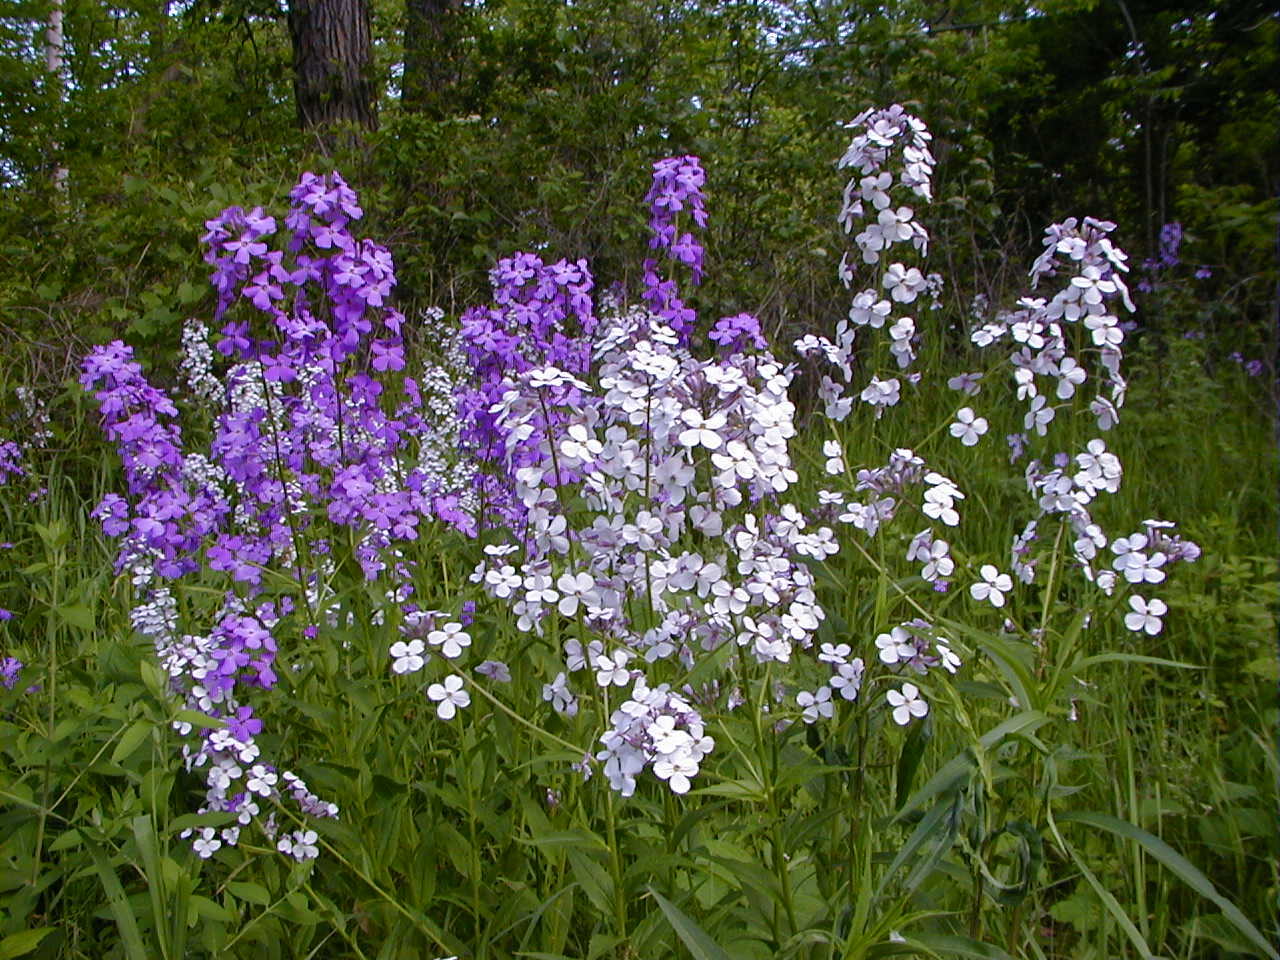 Dame's rocket is an example of an invasive plant commonly found in Wisconsin.